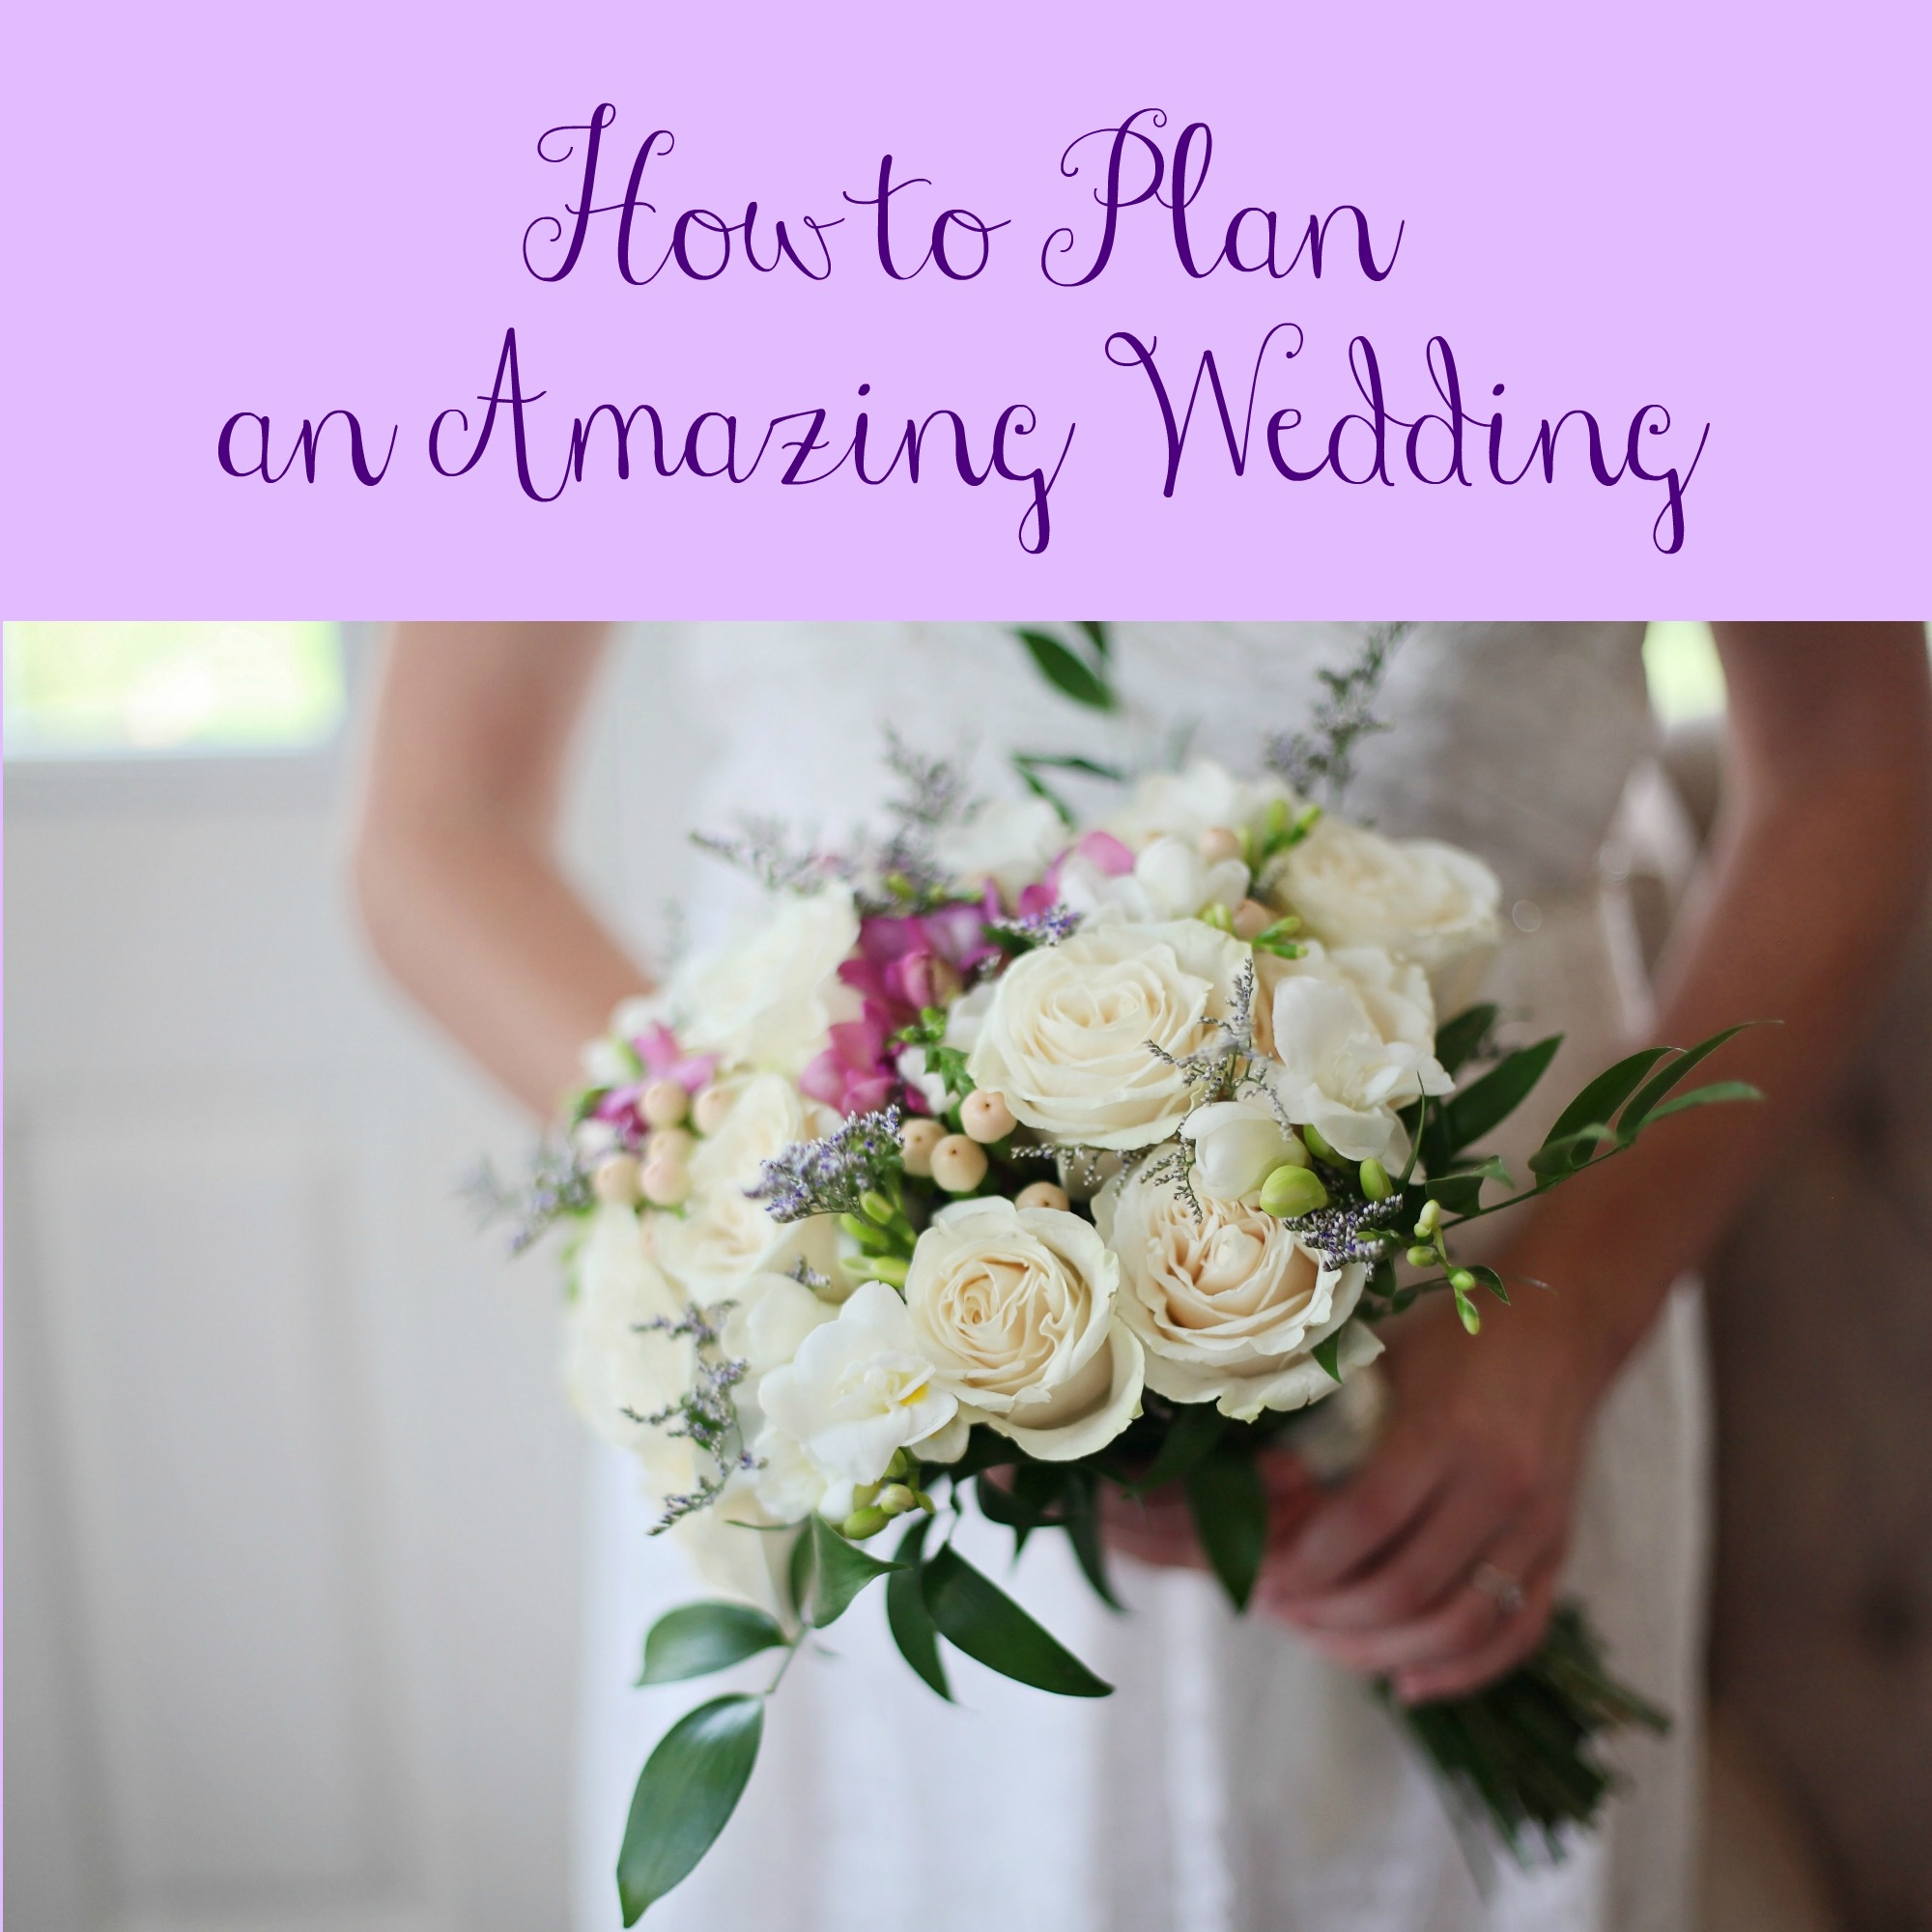 Planning An Amazing Wedding